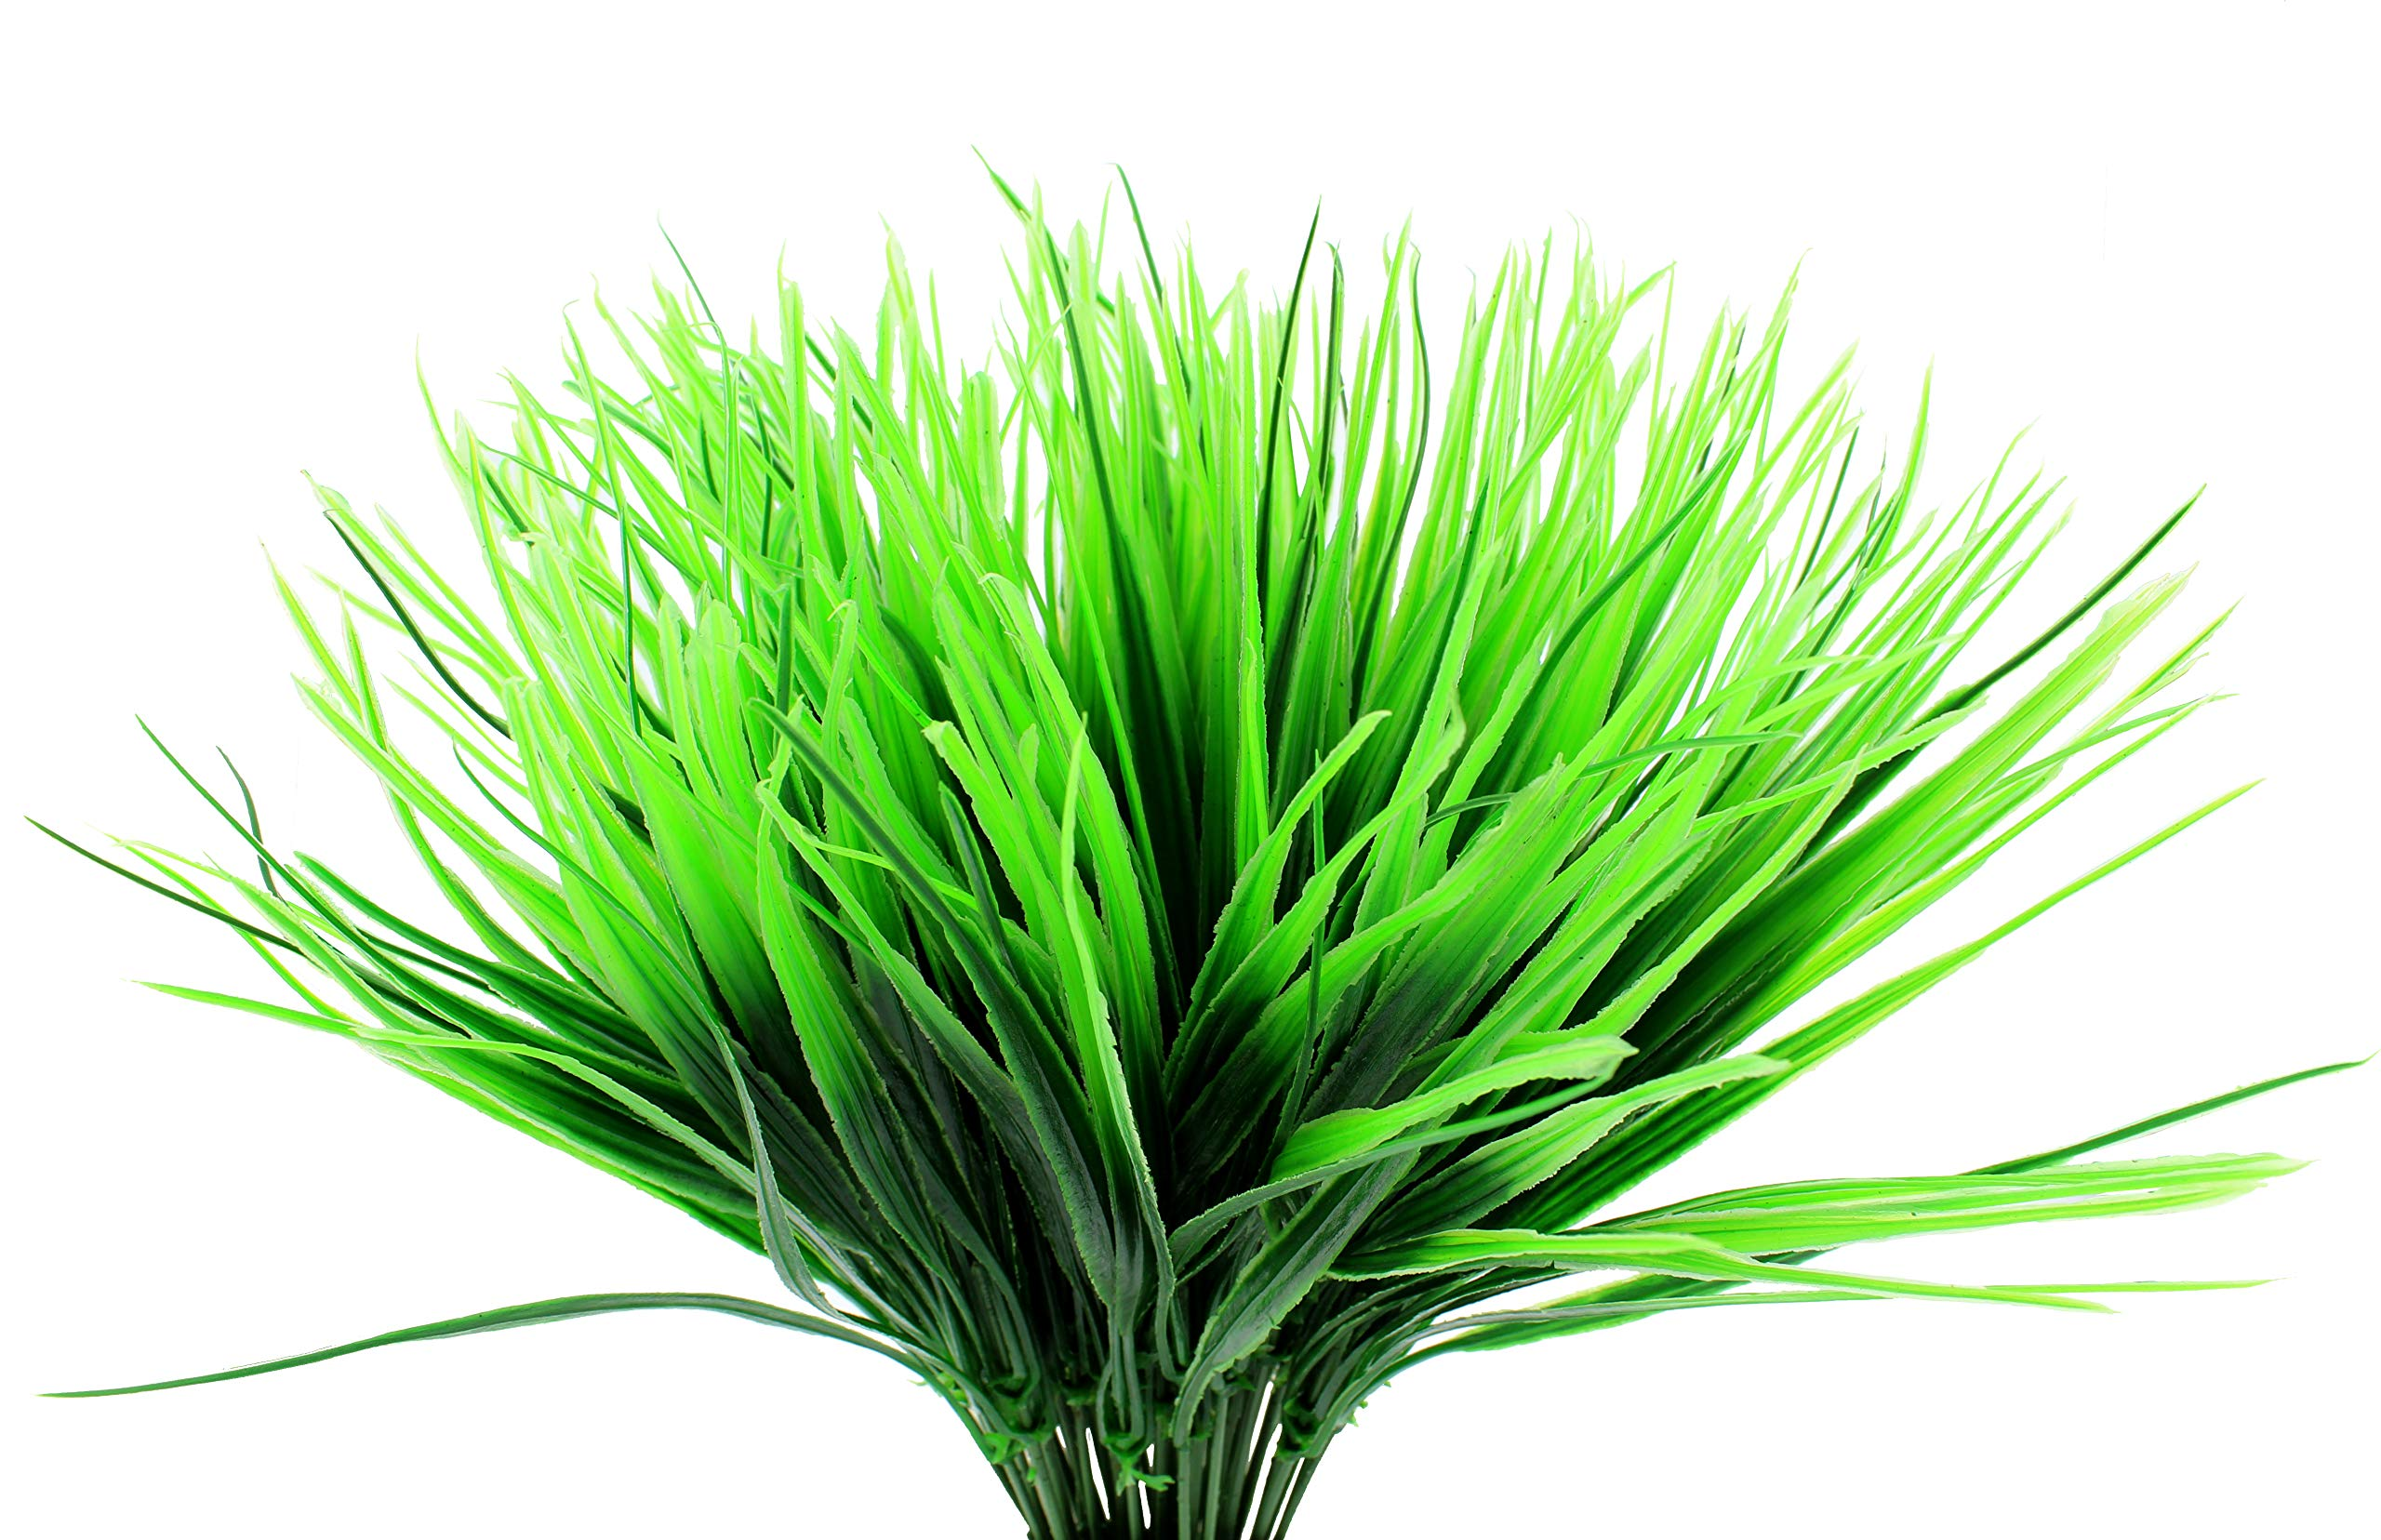 Plastic-Wheatgrass-8-Bunches-Artificial-Wheat-Grass-Greenery-Shrubs-Stalks-Fake-Decorating-Shrubs-for-IndoorOutdoor-Imitation-Plants